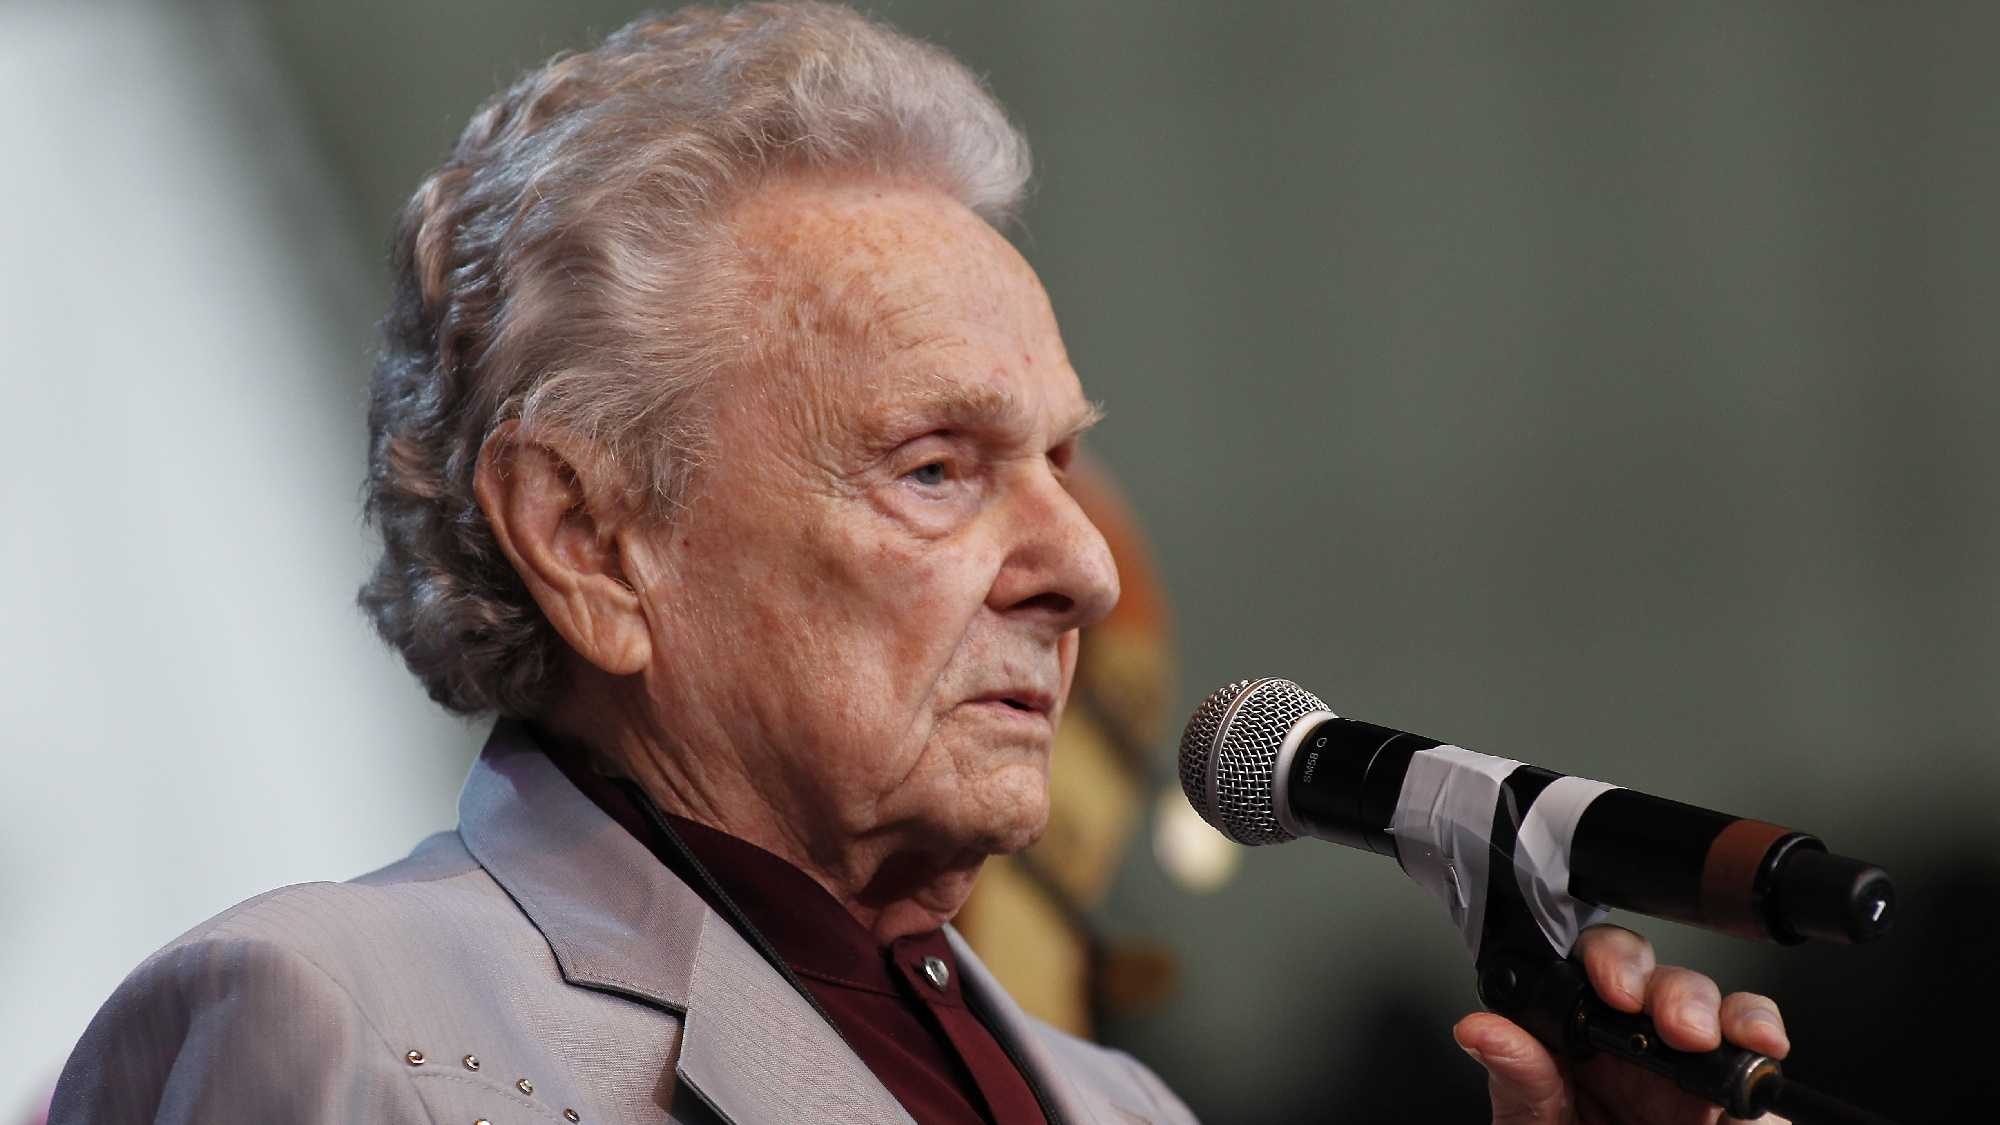 Ralph Stanley performs during the Bridge School Benefit concert in Mountain View, Calif., Sunday, Oct. 24, 2010.